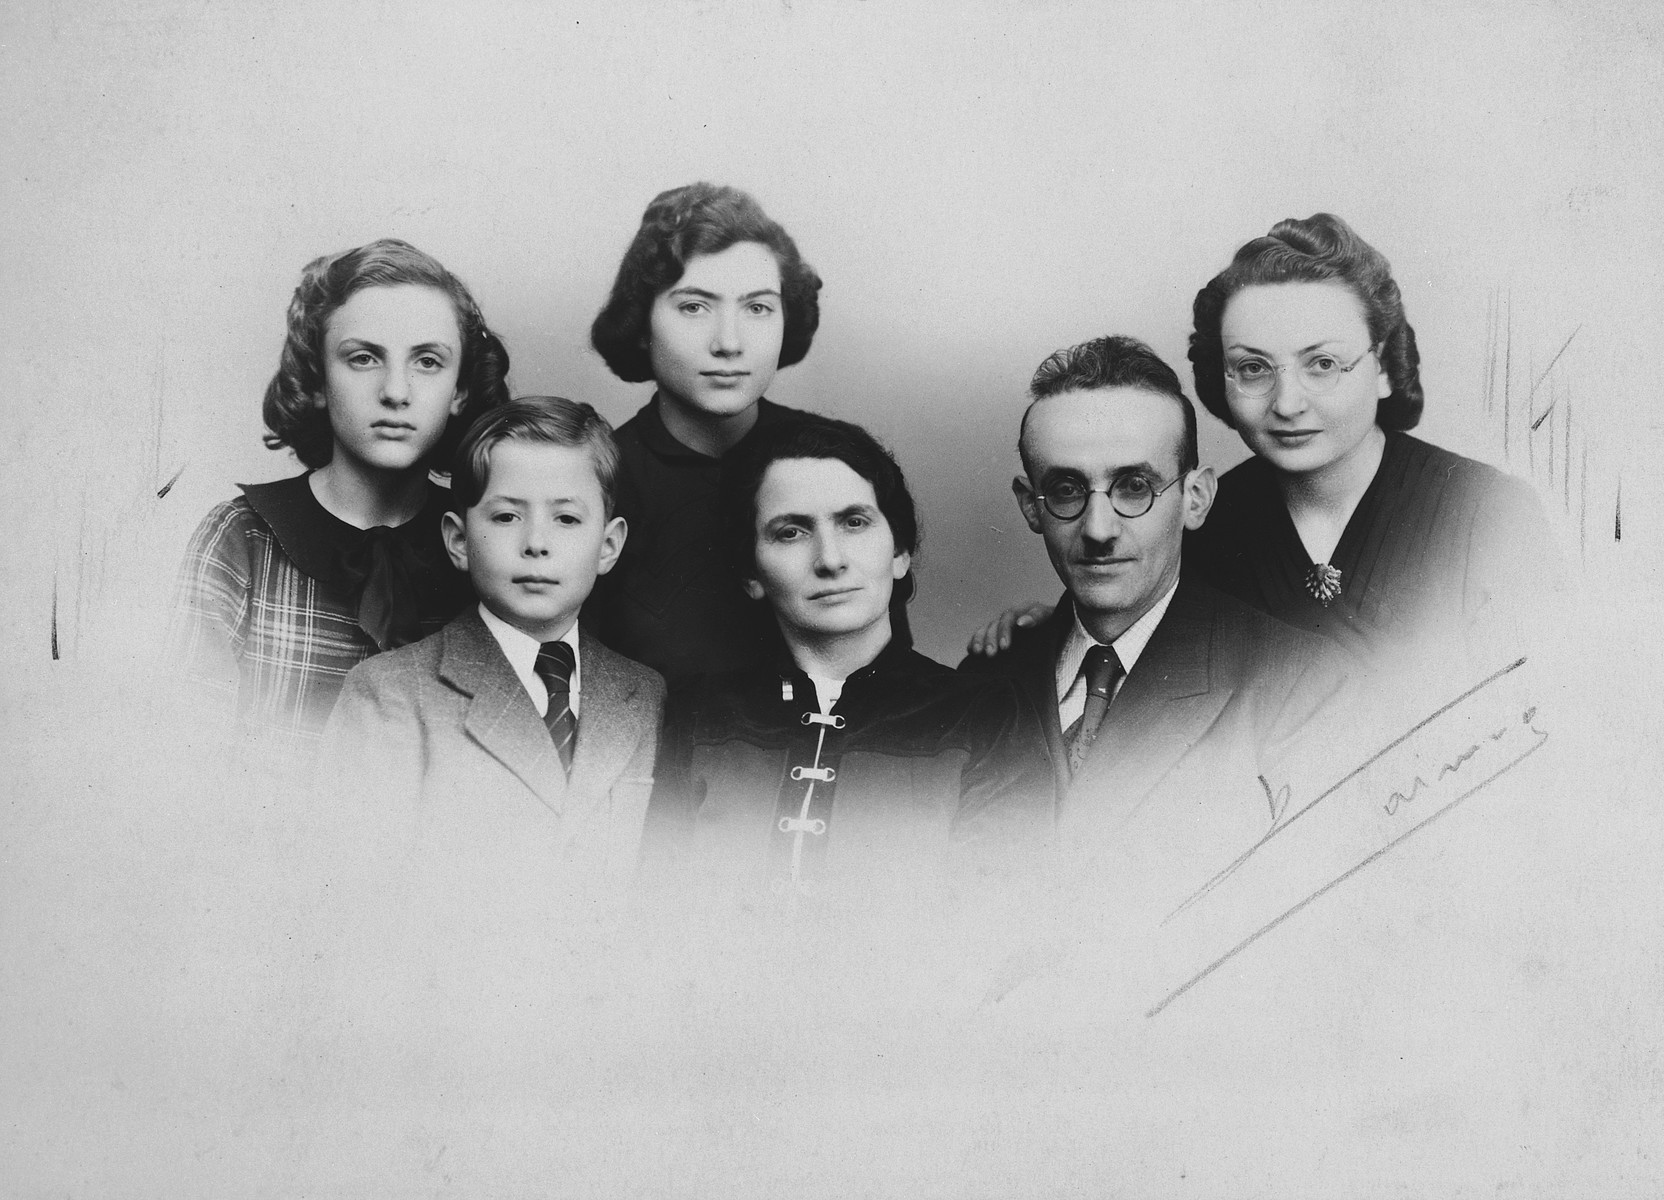 Wartime portrait of a French-Jewish family.  From left to right are Suzanne, Henri, Rosette, Gittle, Shimon and Sarah Rivka Bomblat.